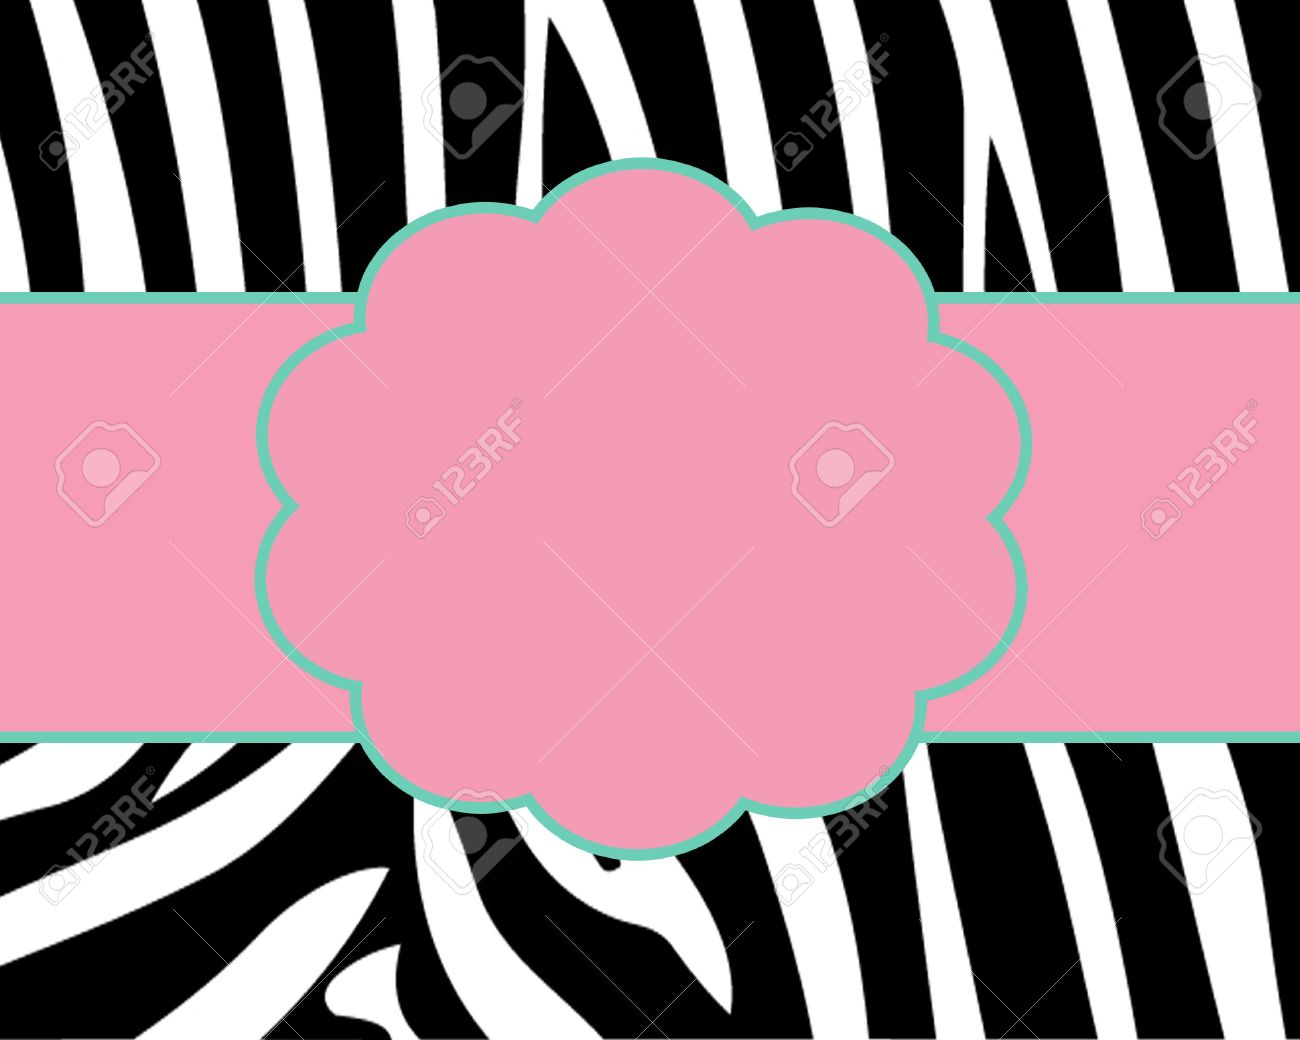 Zebra Print Card Template Photo Picture And Royalty Free – Zebra Print Birthday Cards